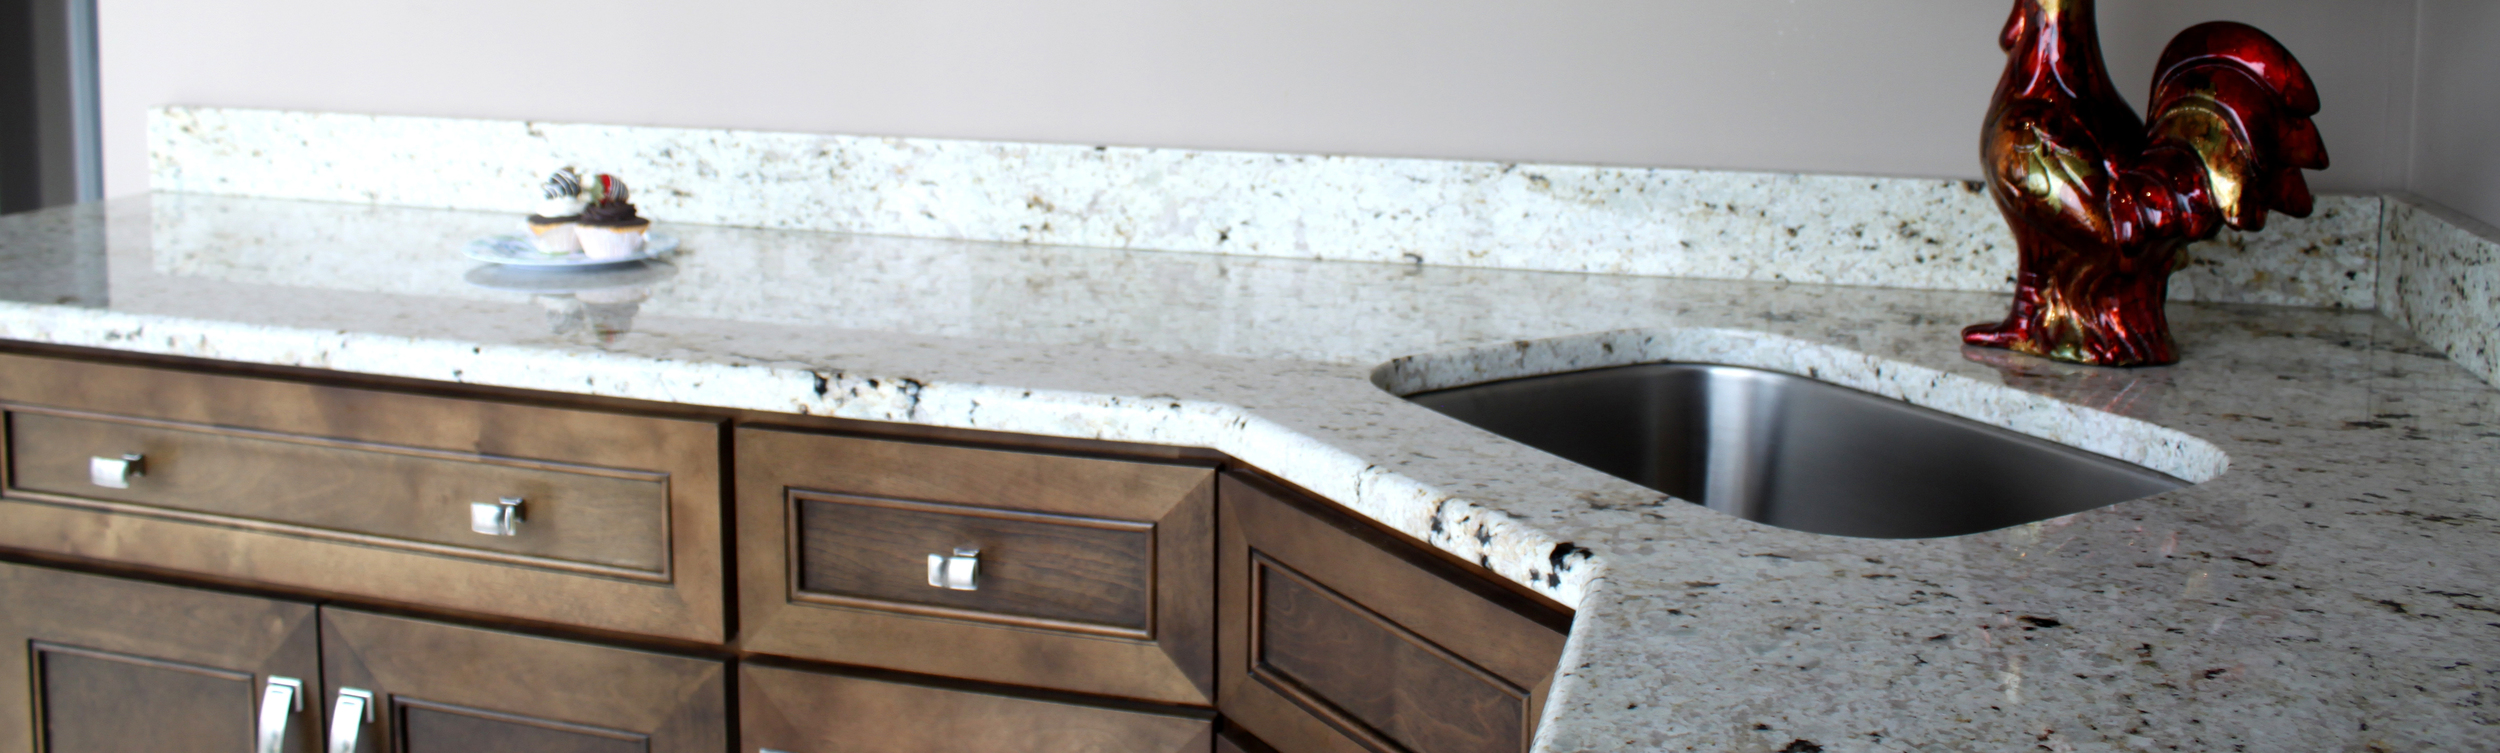 Kitchen cabinets in south elgin il - South Elgin Kitchen Cabinets Sinks And Countertops